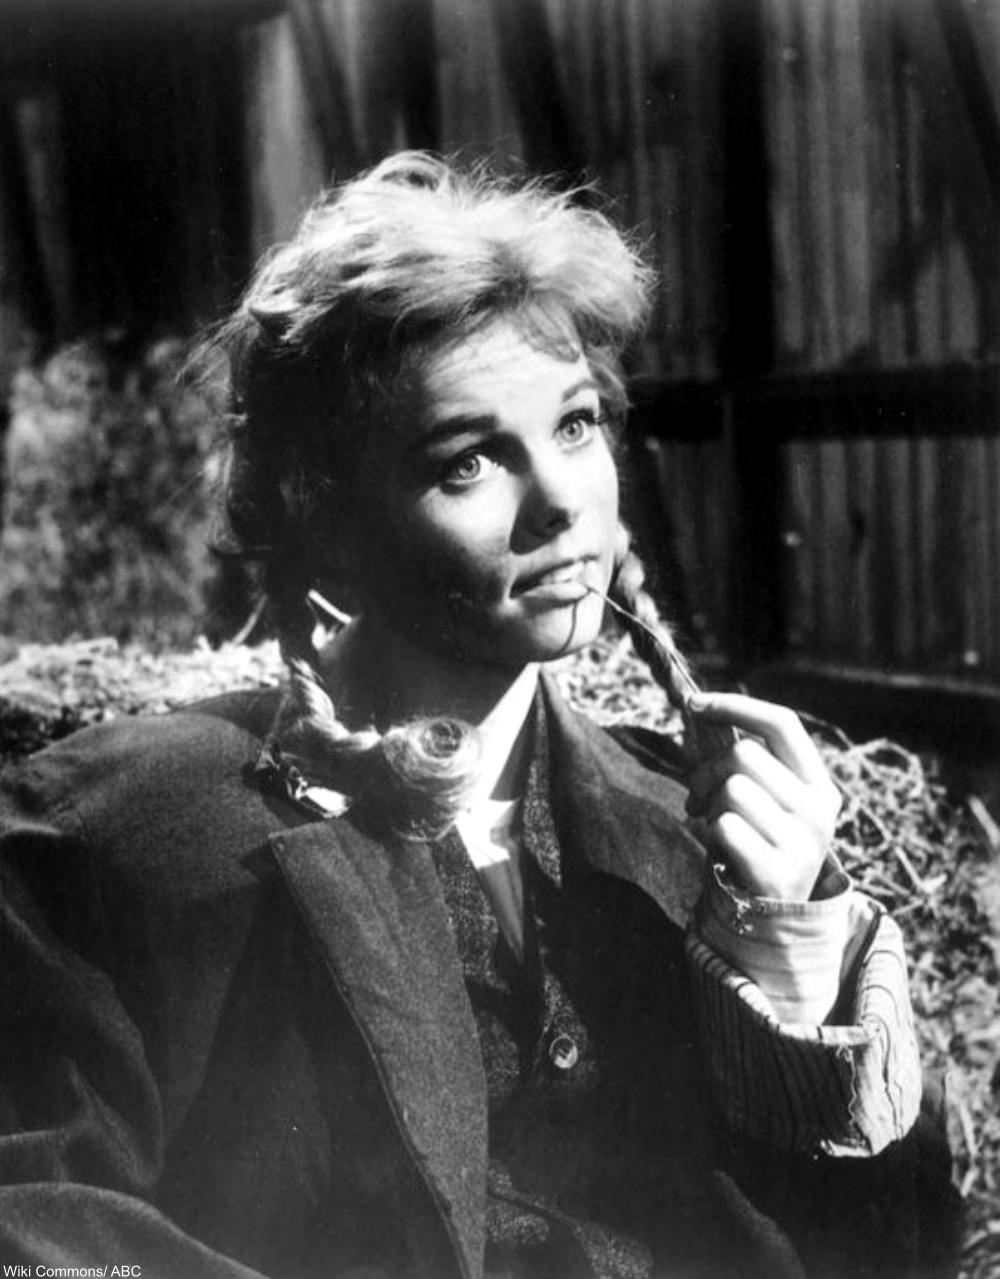 Cynthia Pepper in the 1961 TV show Margie